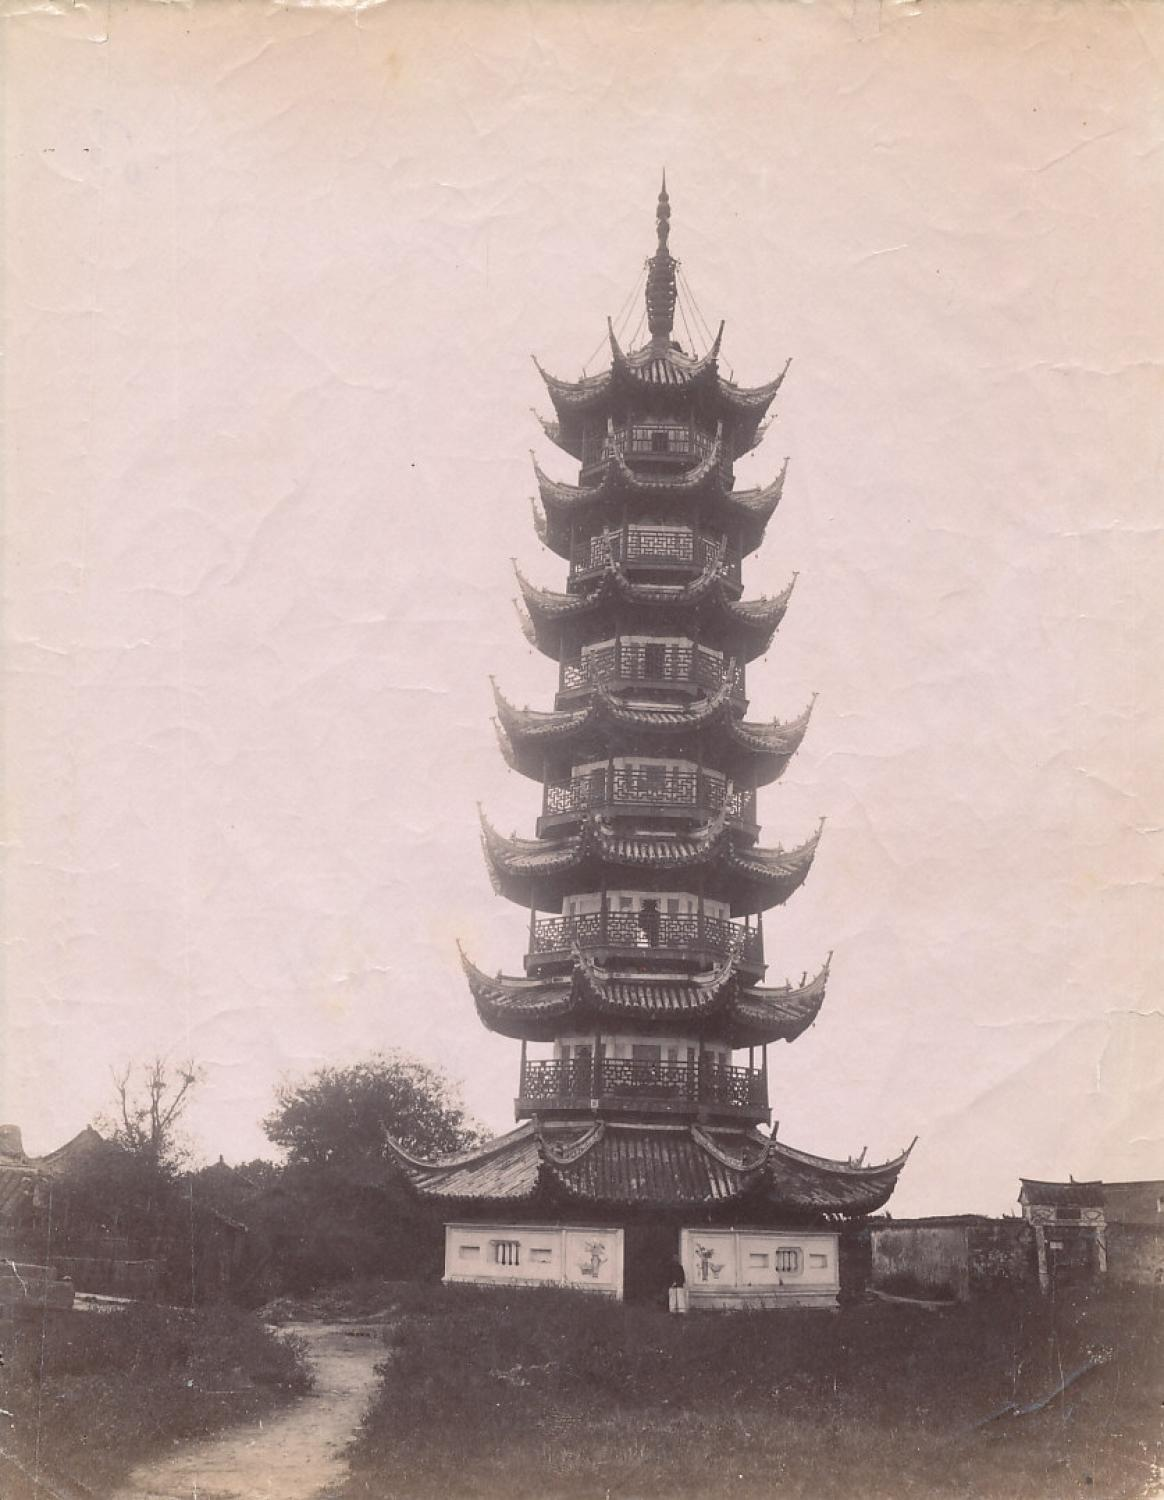 Albumen photo of Shanghai Longhua pagoda